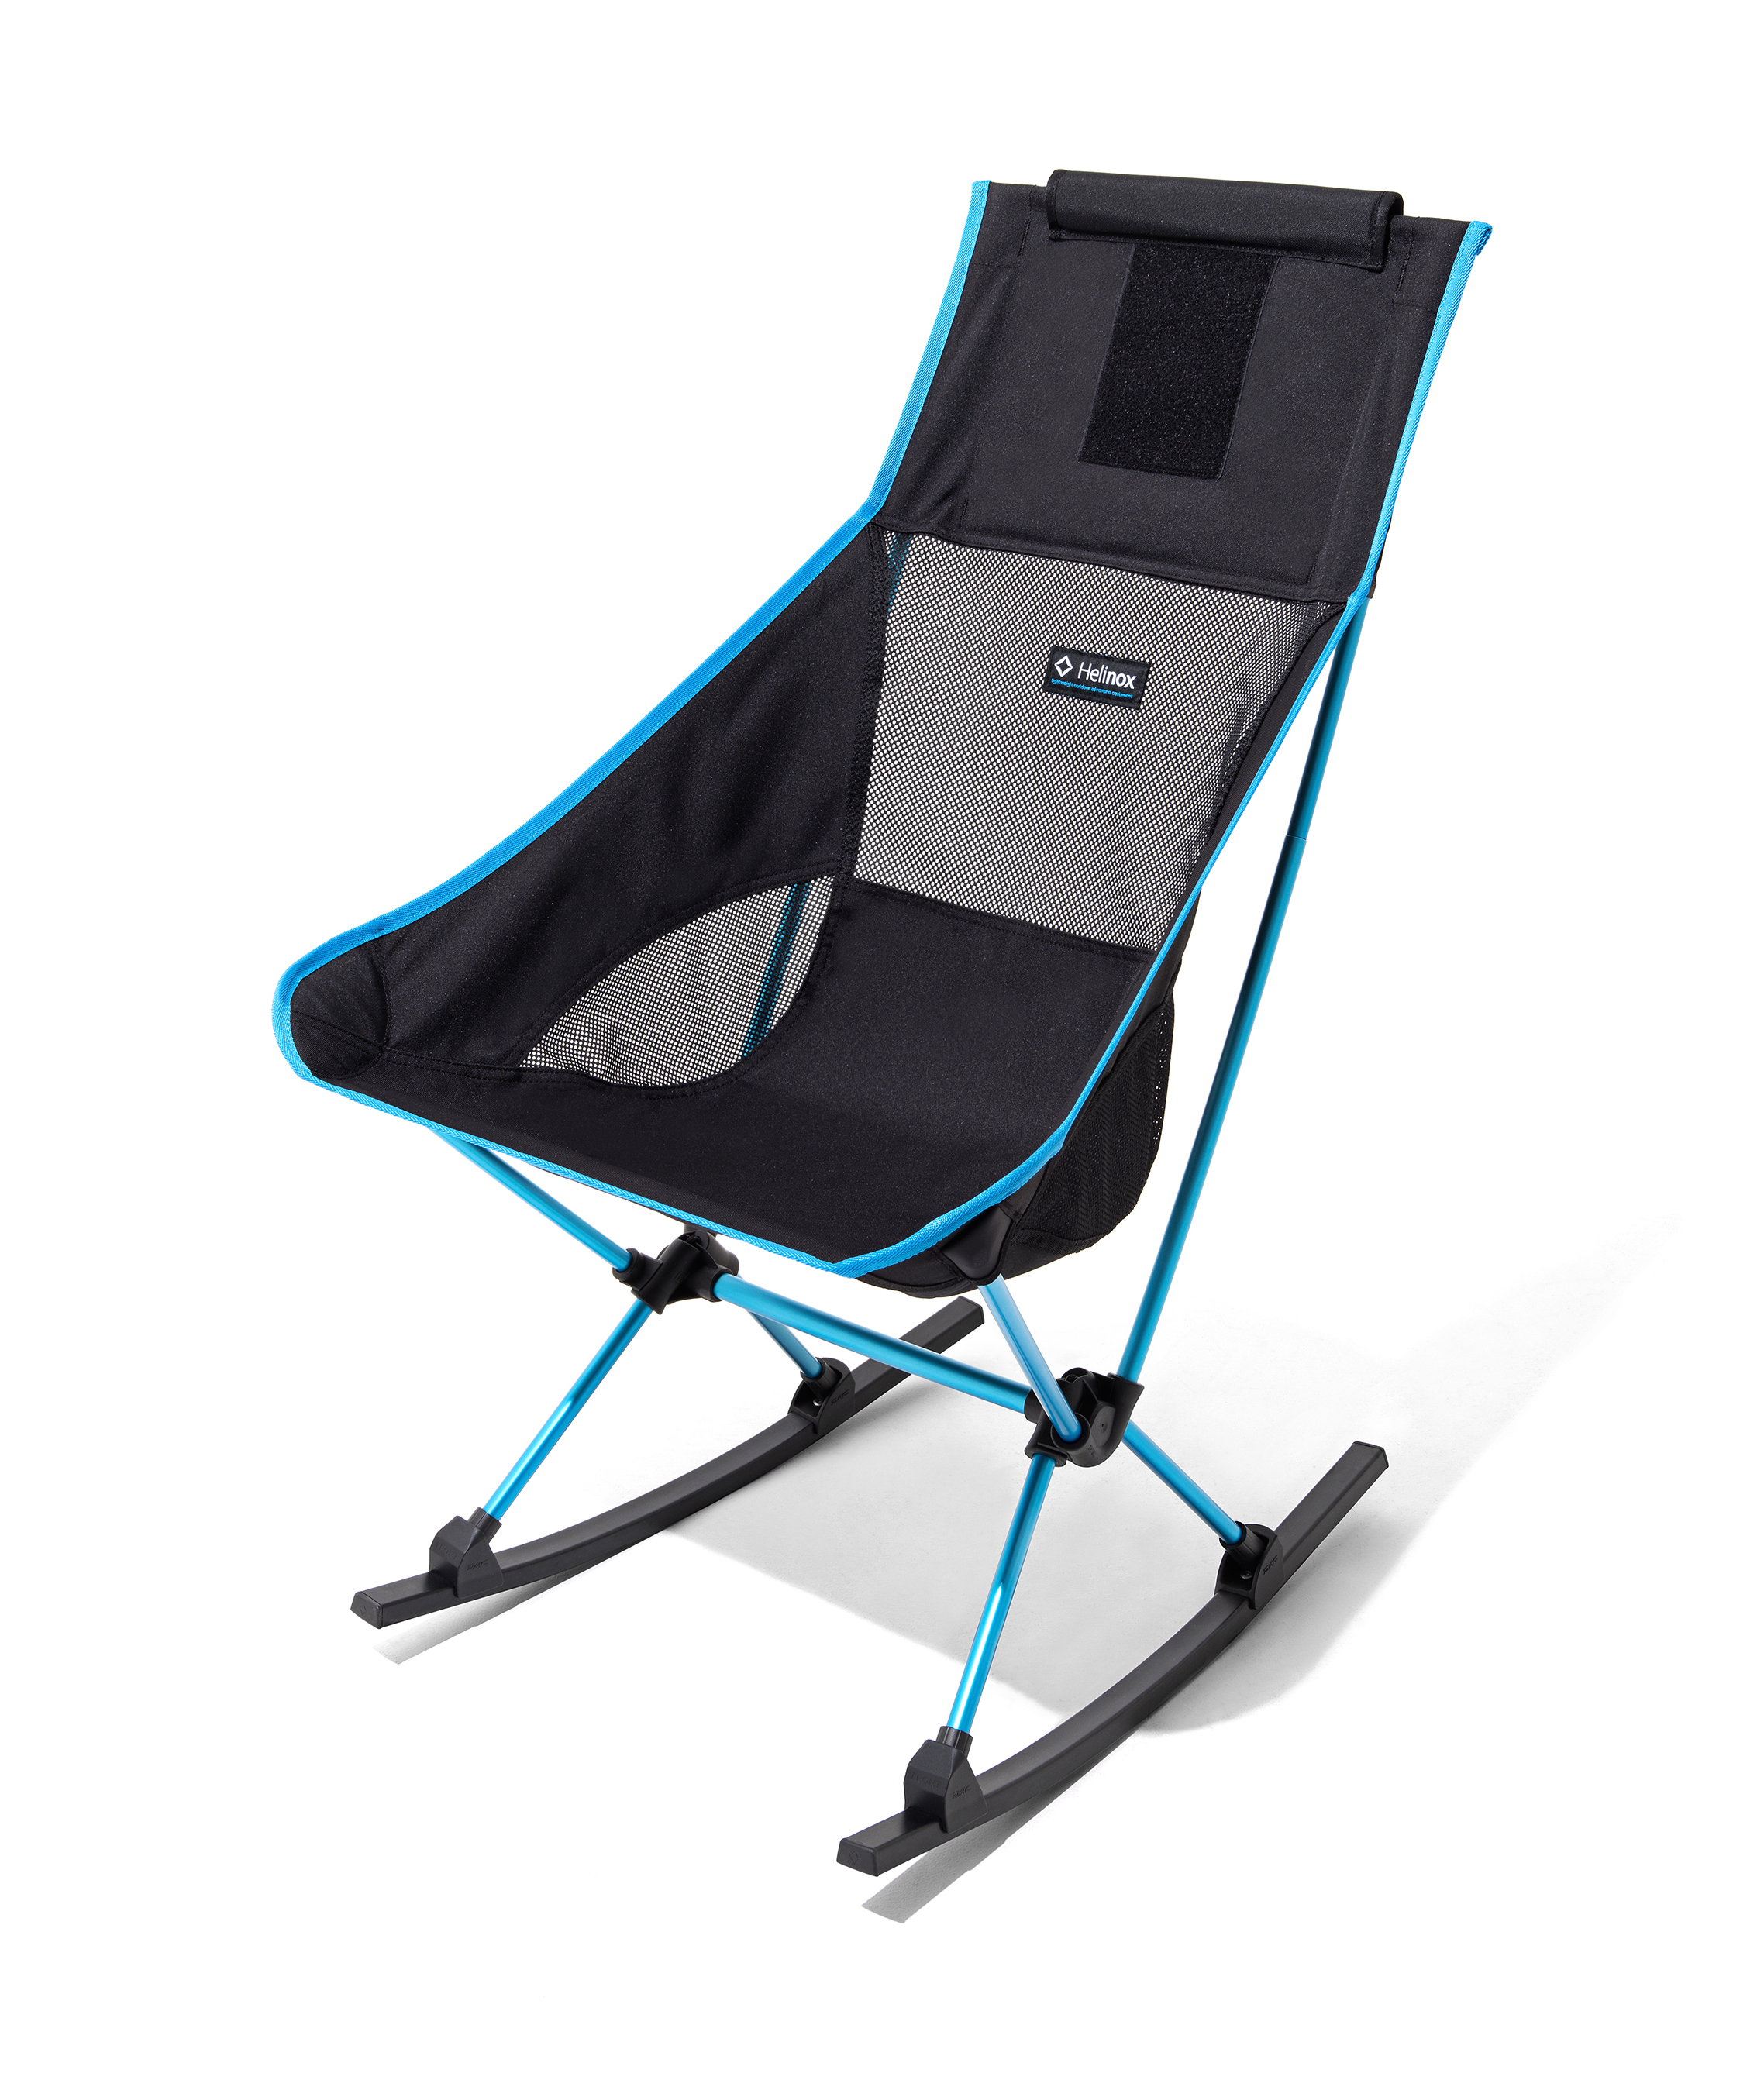 Outdoors Rocking Chair Helinox Chair Two Rocker